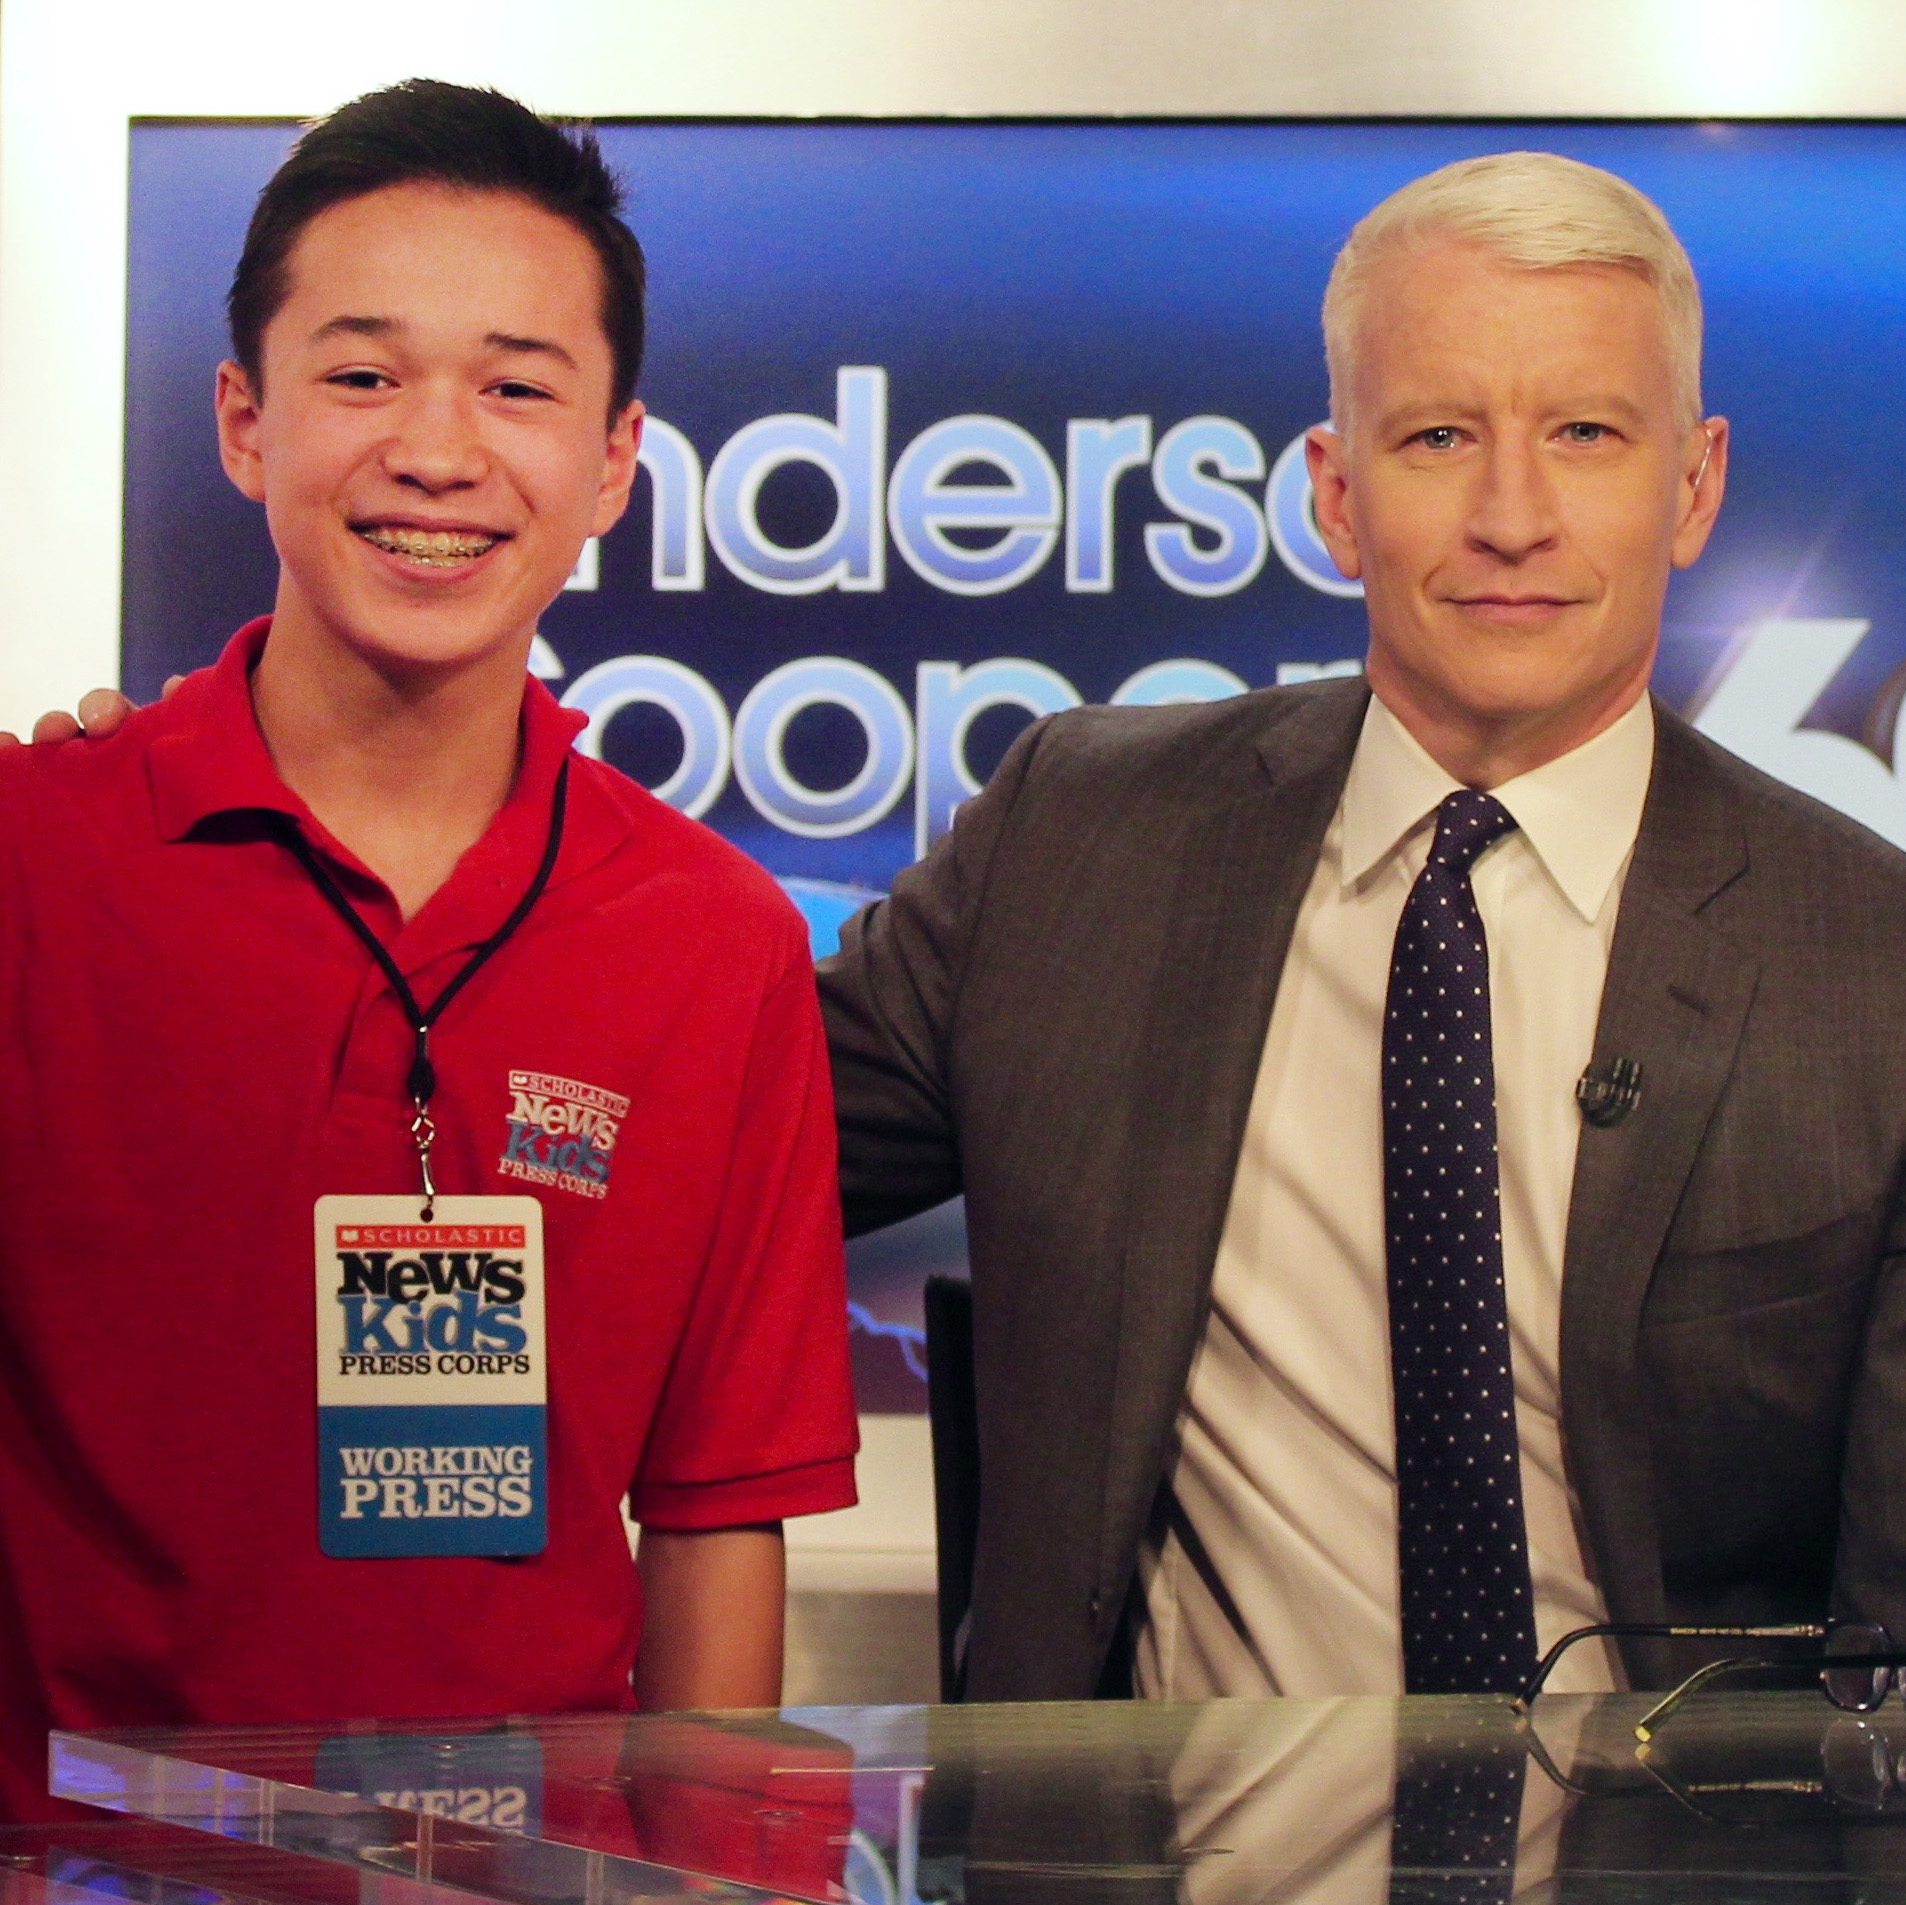 Max with Anderson Cooper on the set of Anderson Cooper 360 in New York City